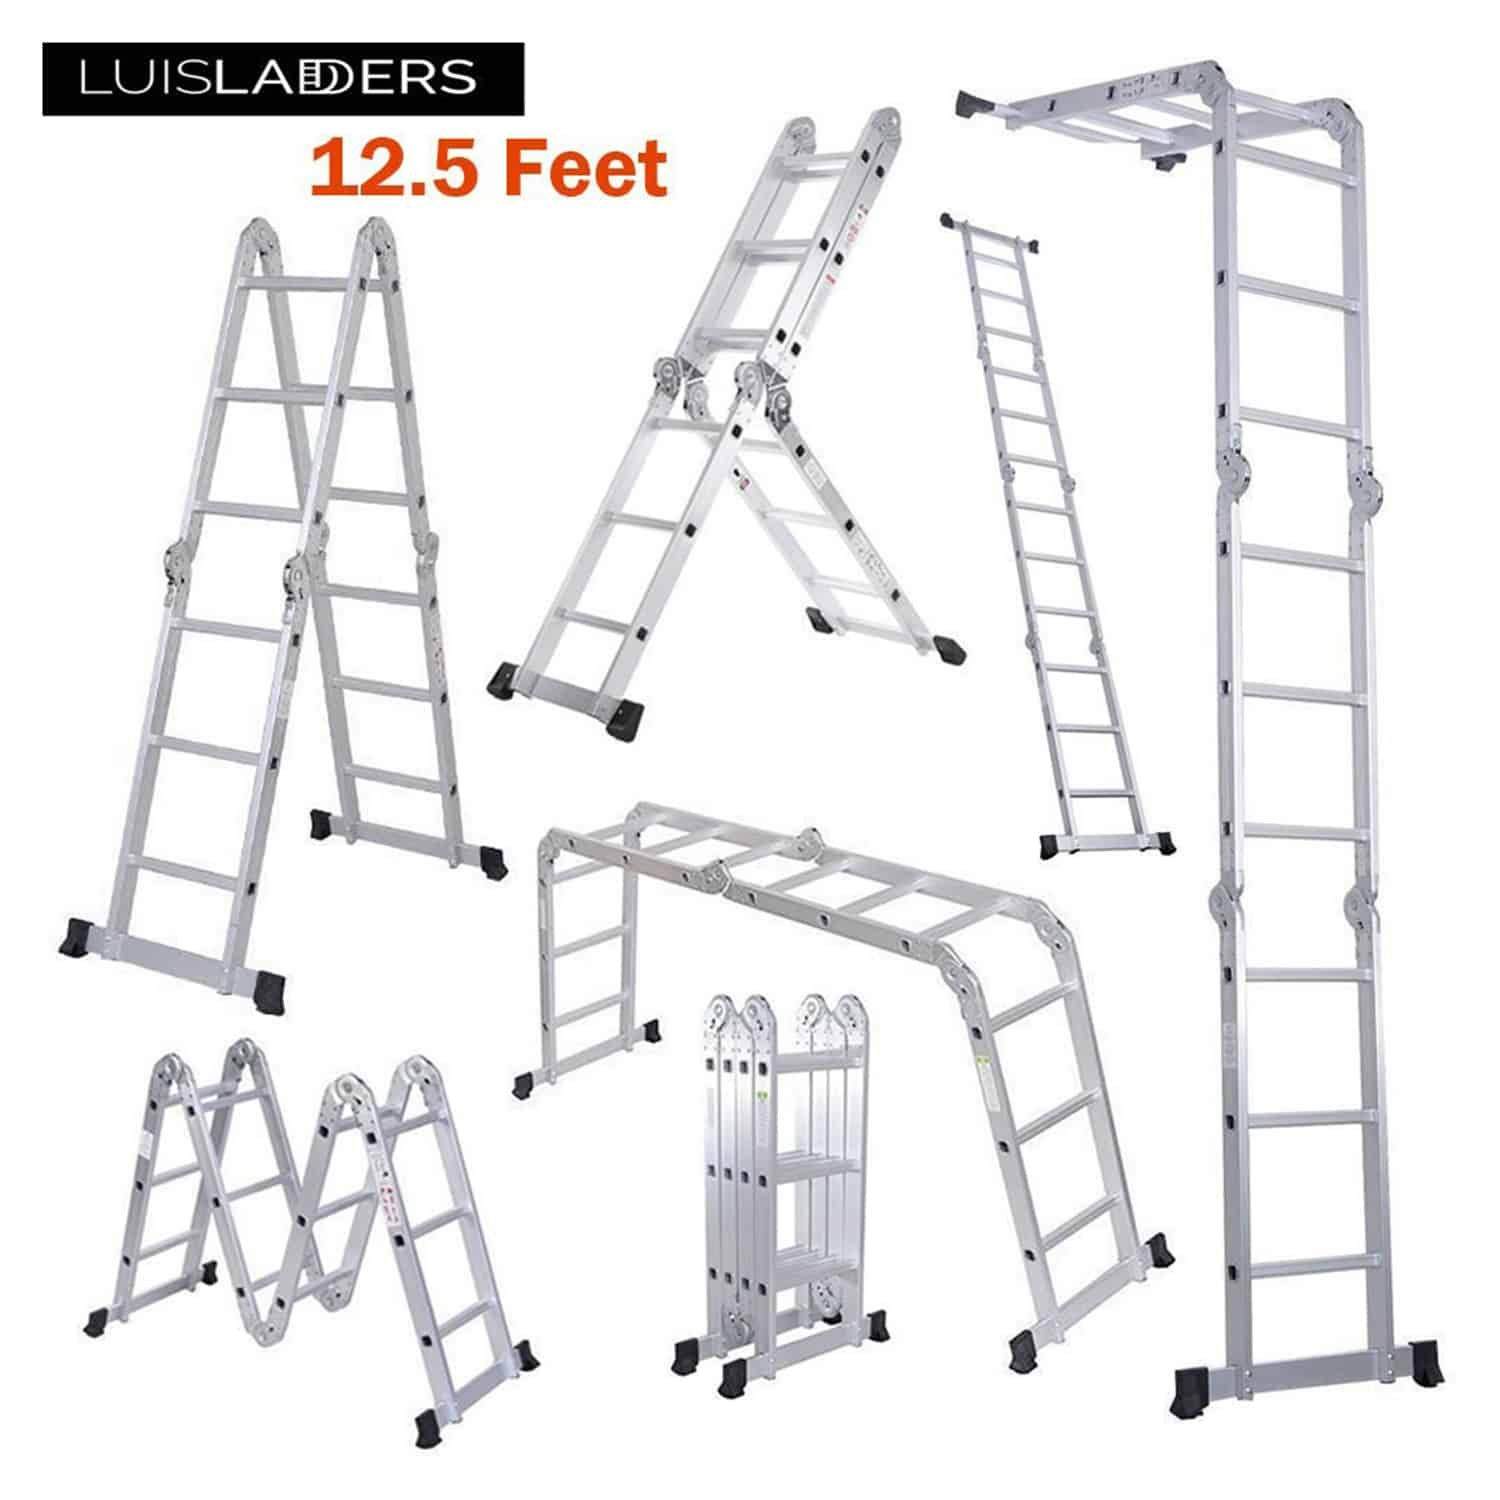 Luisladders Aluminum Safety Locking Hinges Multi Purpose Folding Extendable Multi Purpose Ladder Ladder Aluminum Extension